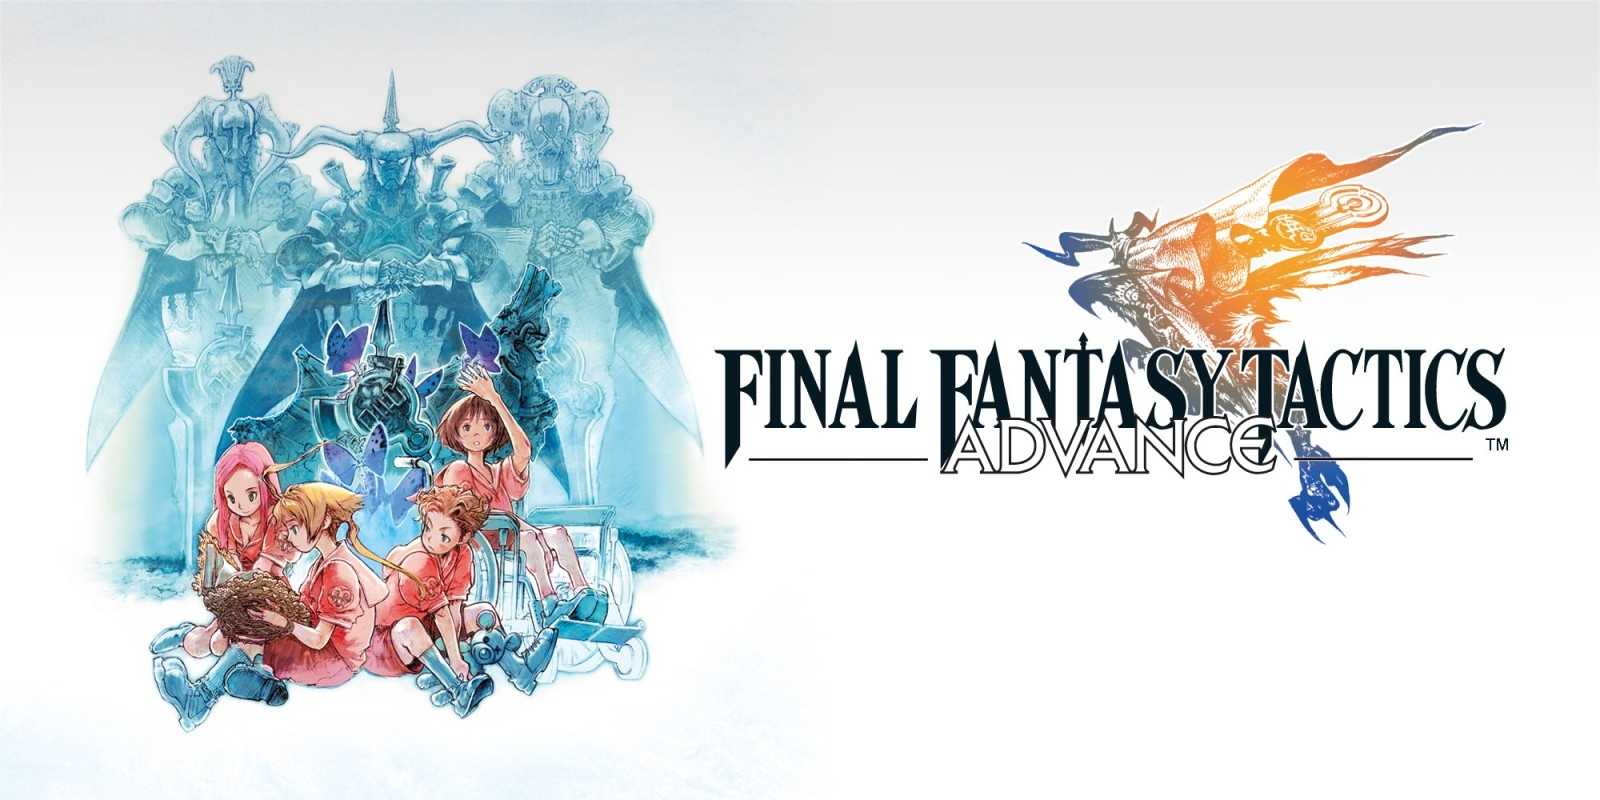 Which are your favourite Final Fantasy games ranked from